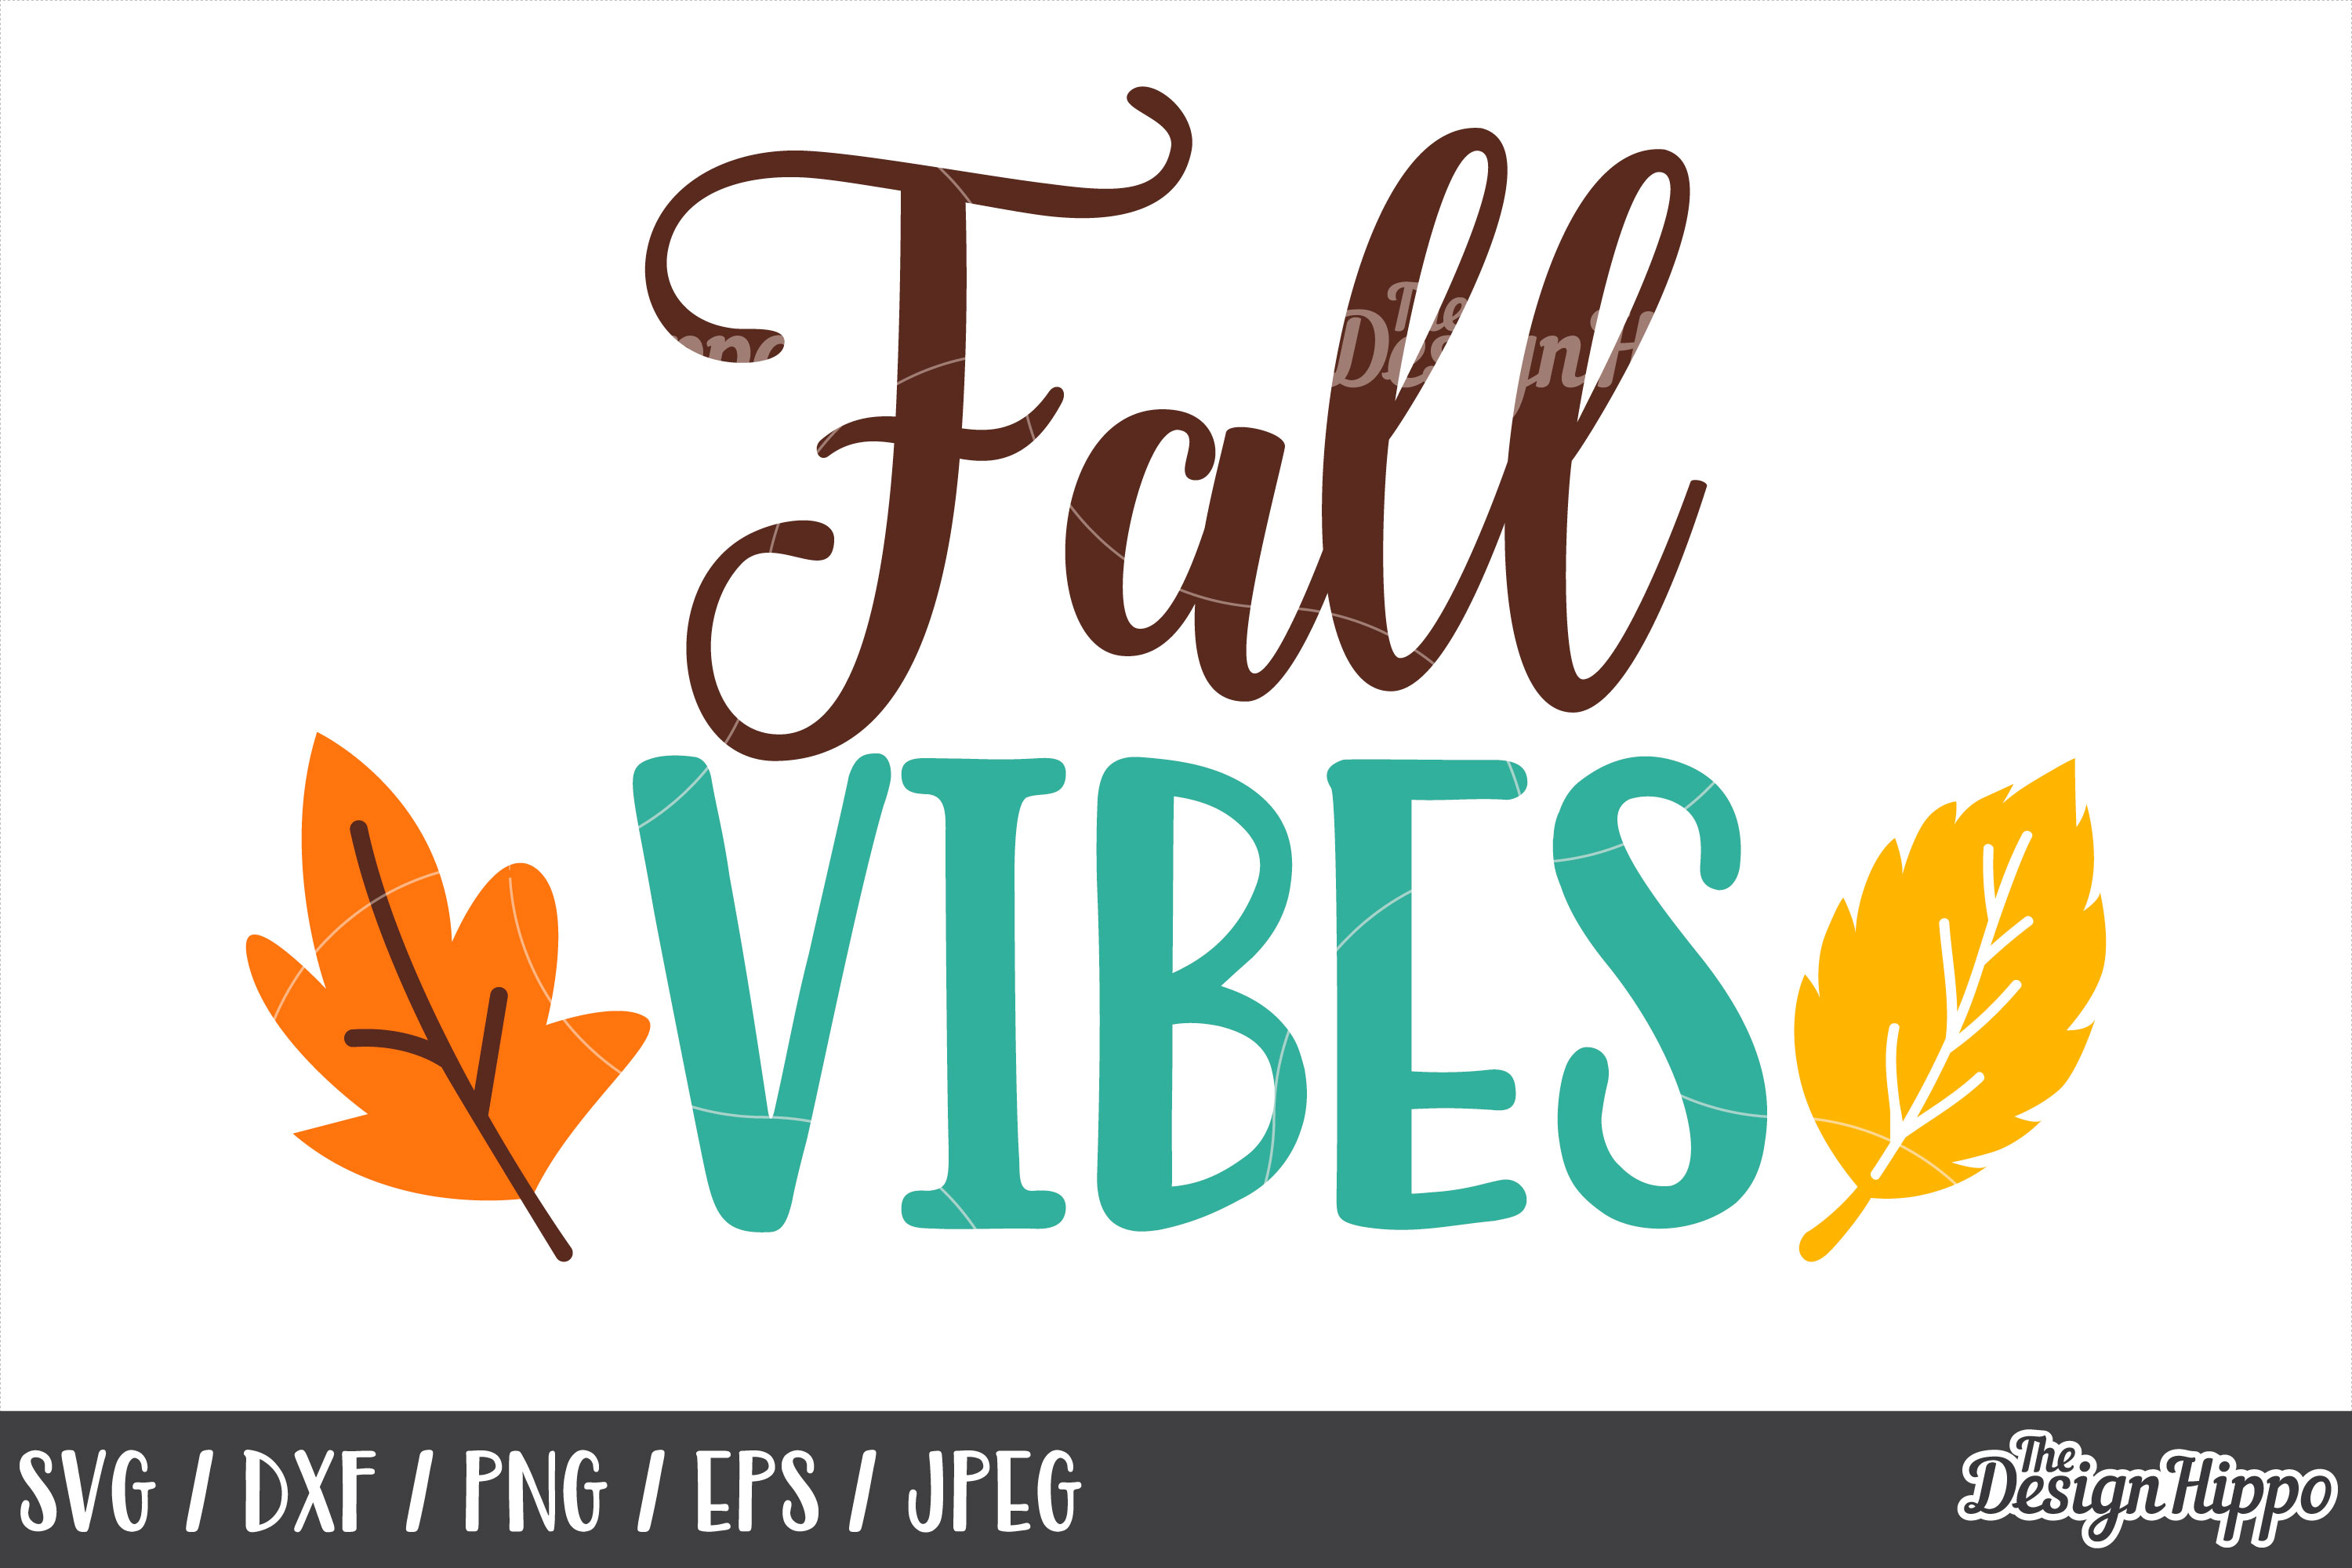 Fall Vibes SVG, DXF, PNG, JPEG, Cut Files, Cricut, Designs example image 1